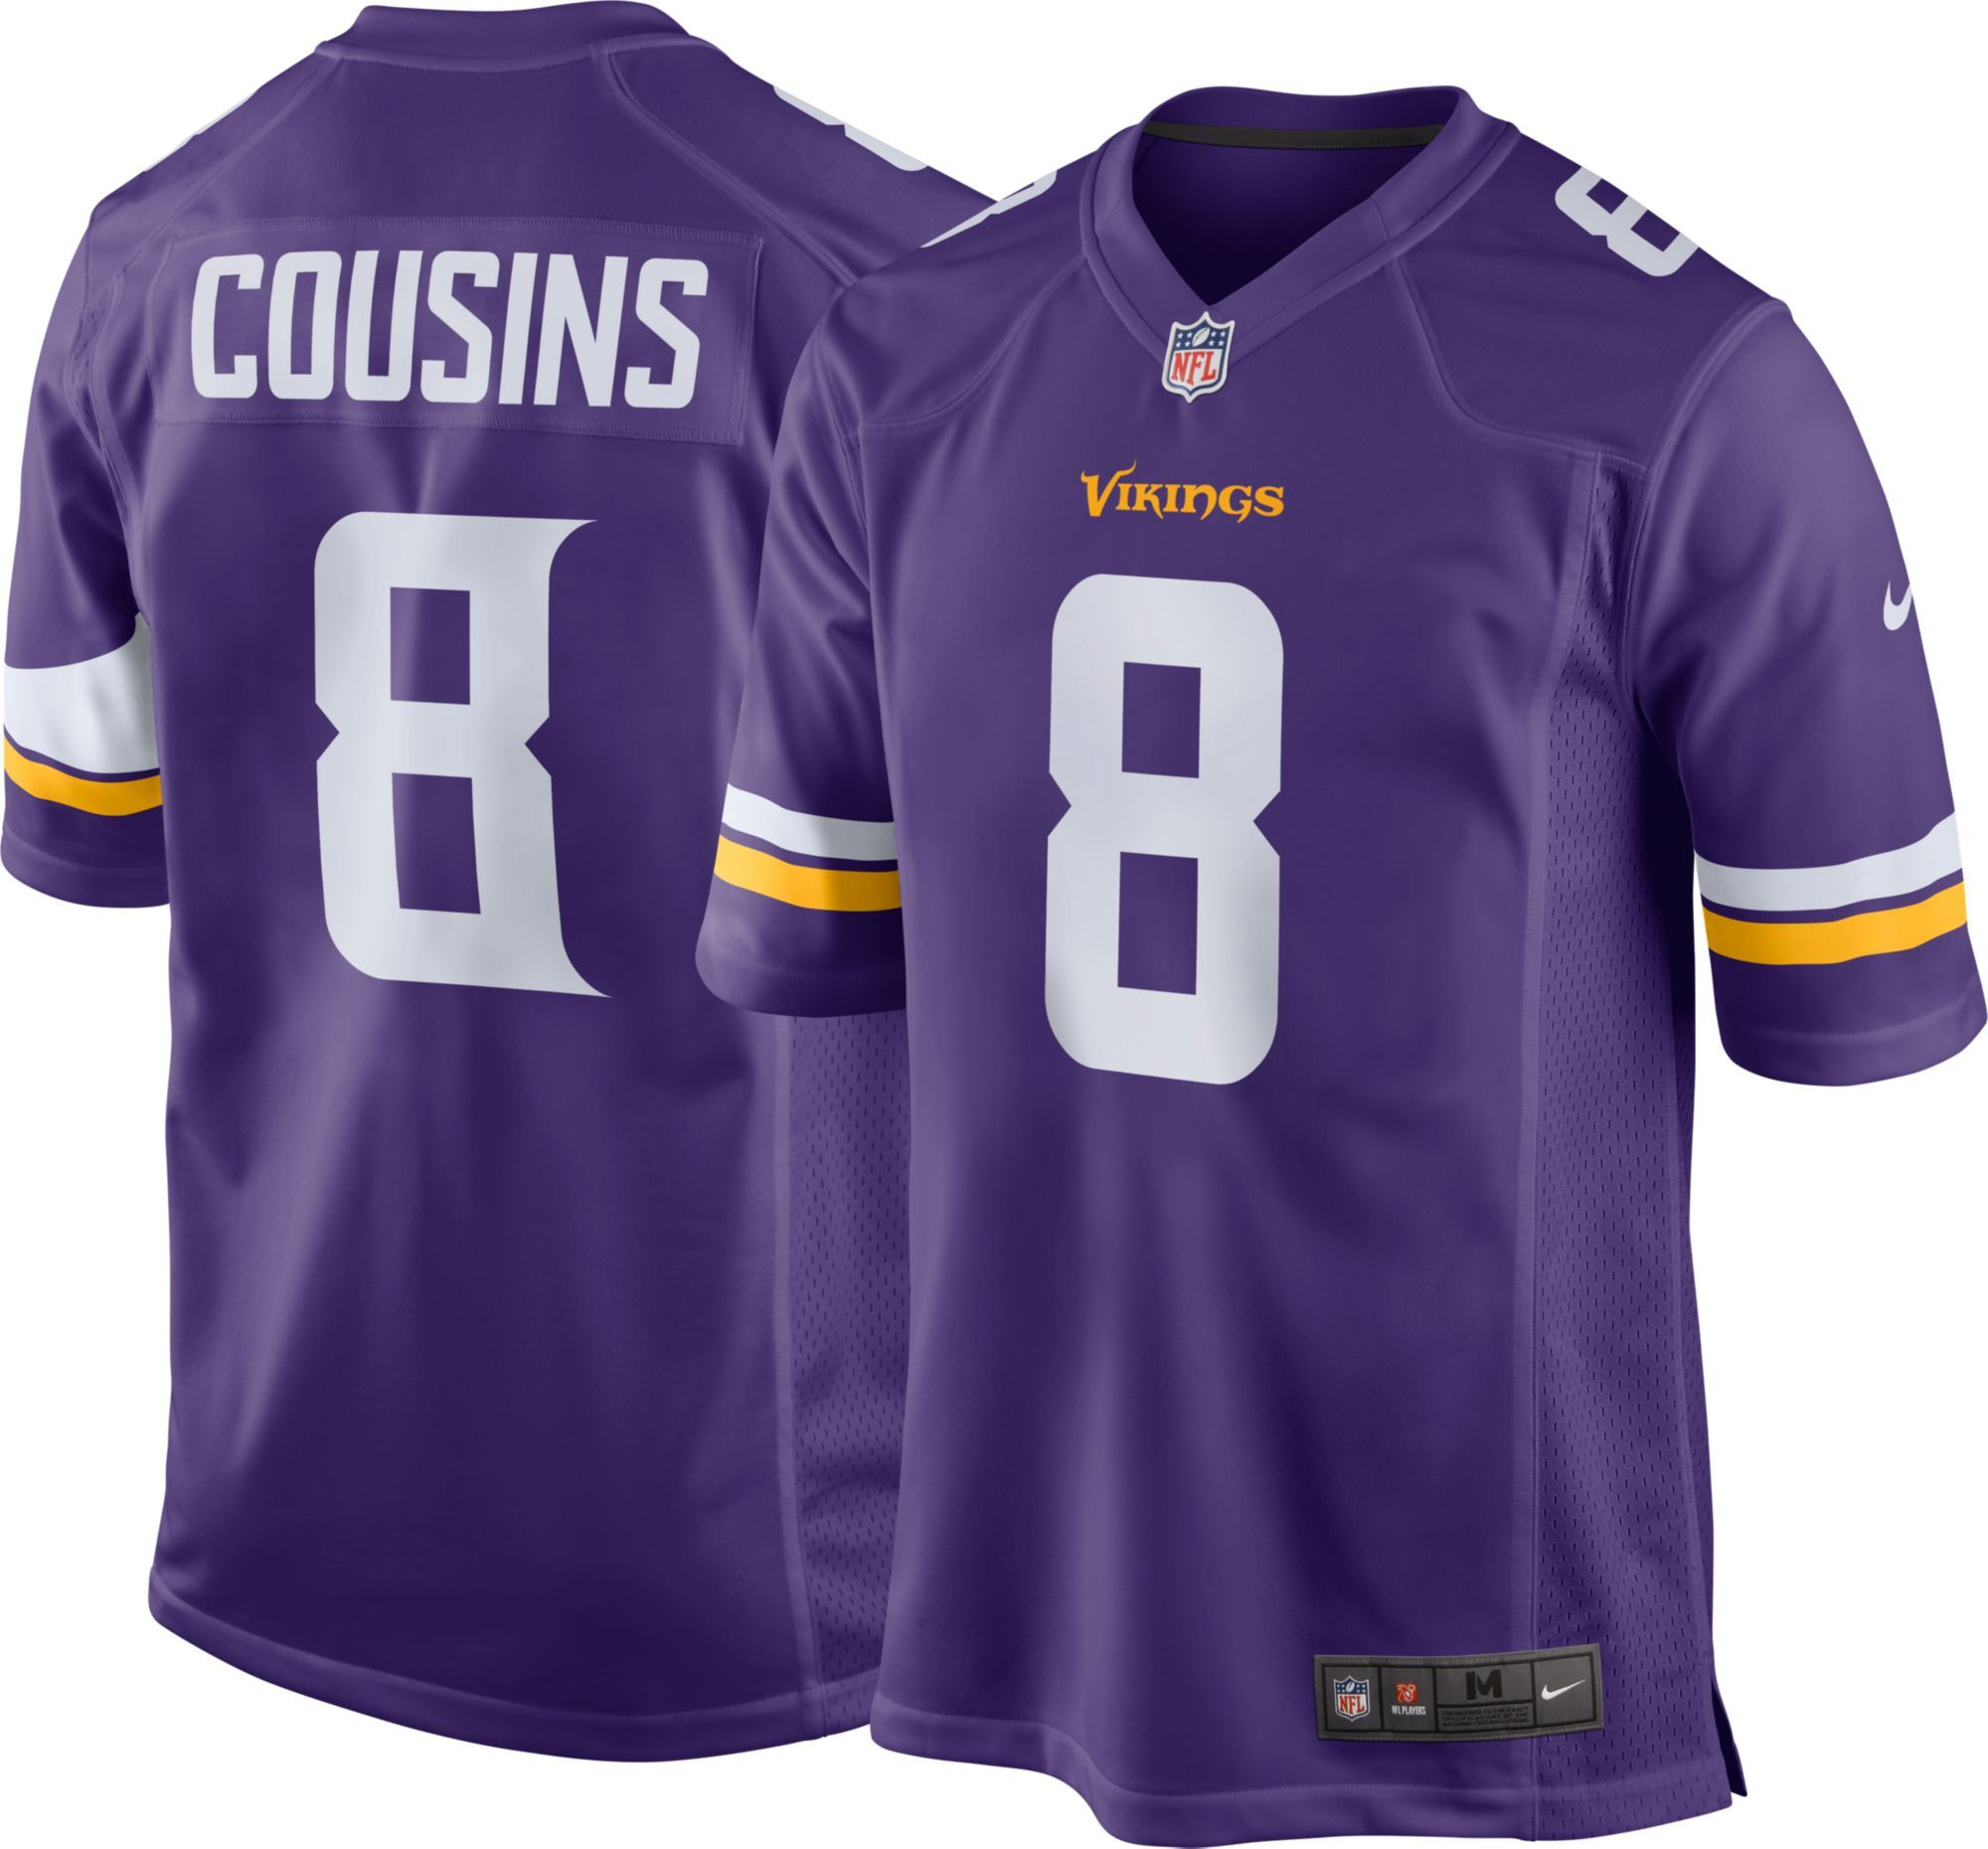 Minnesota Kirk Cousins  8 Nike Men s Home Game Jersey  bdec3b950